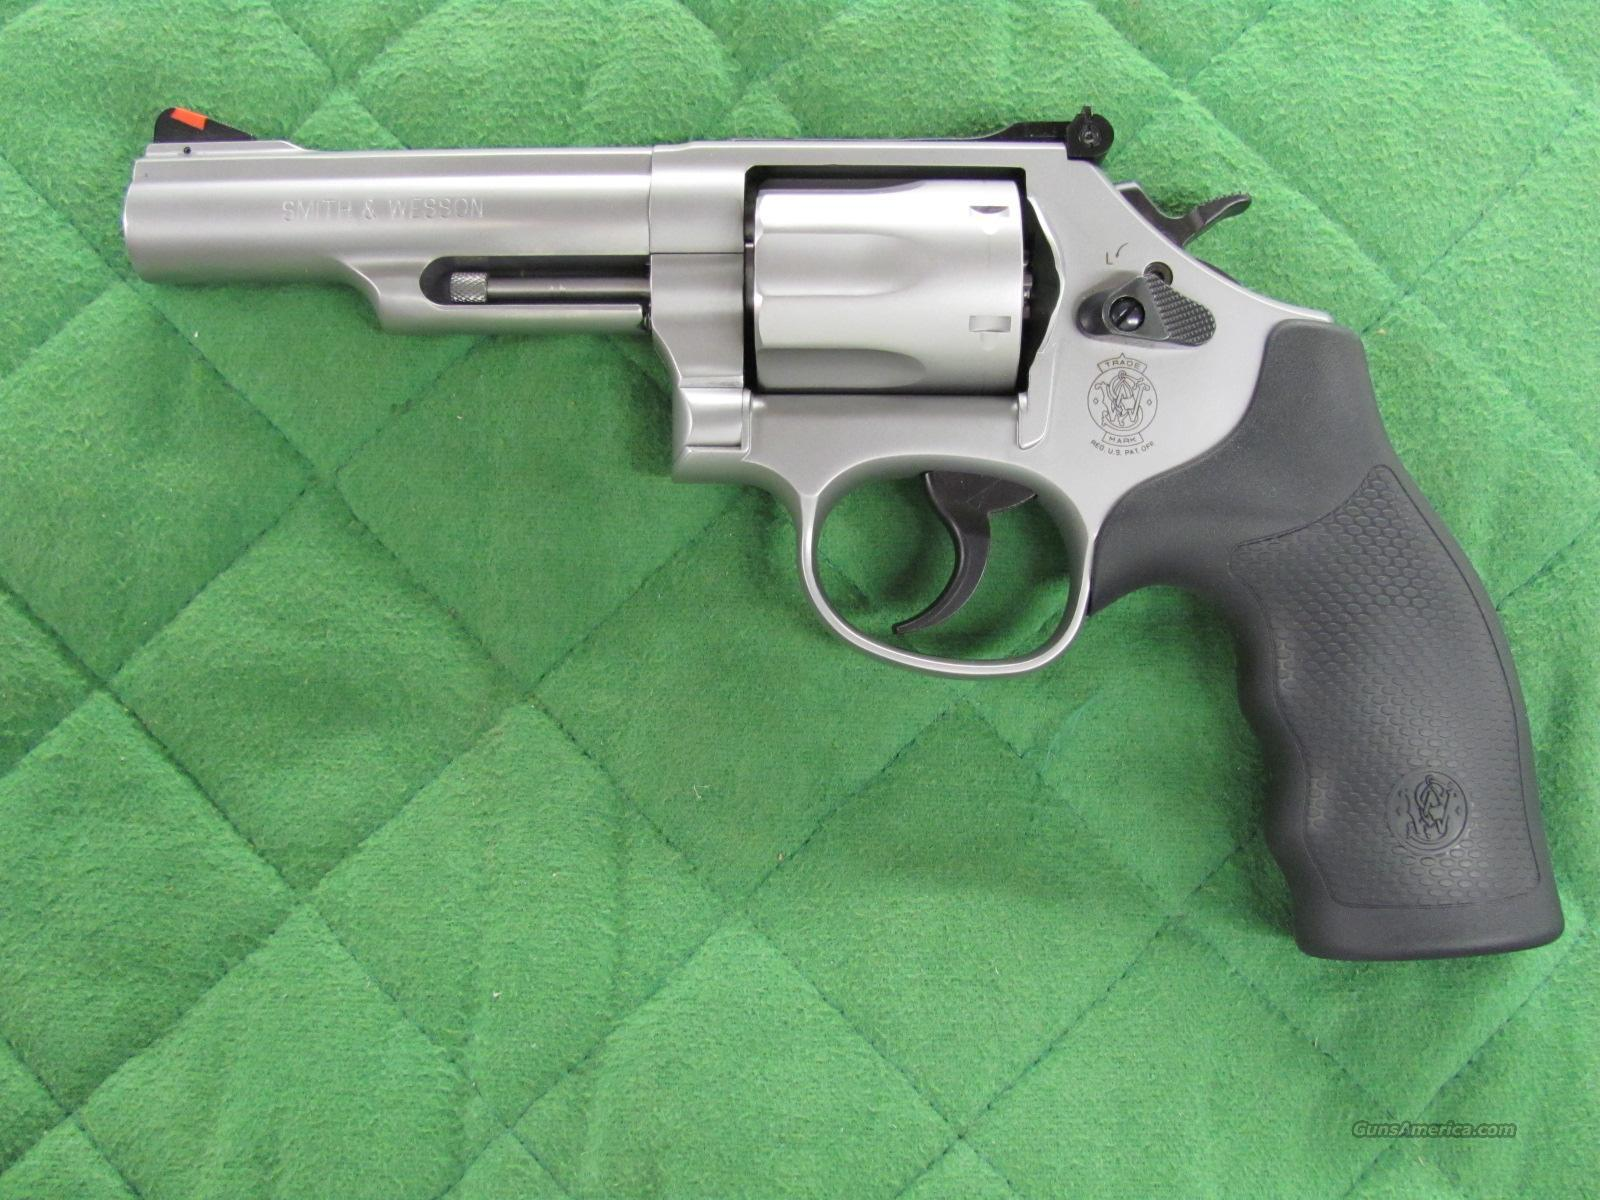 Smith & Wesson Model 66 357 Mag 4 1/4 Inch  **NEW**  Guns > Pistols > Smith & Wesson Revolvers > Full Frame Revolver